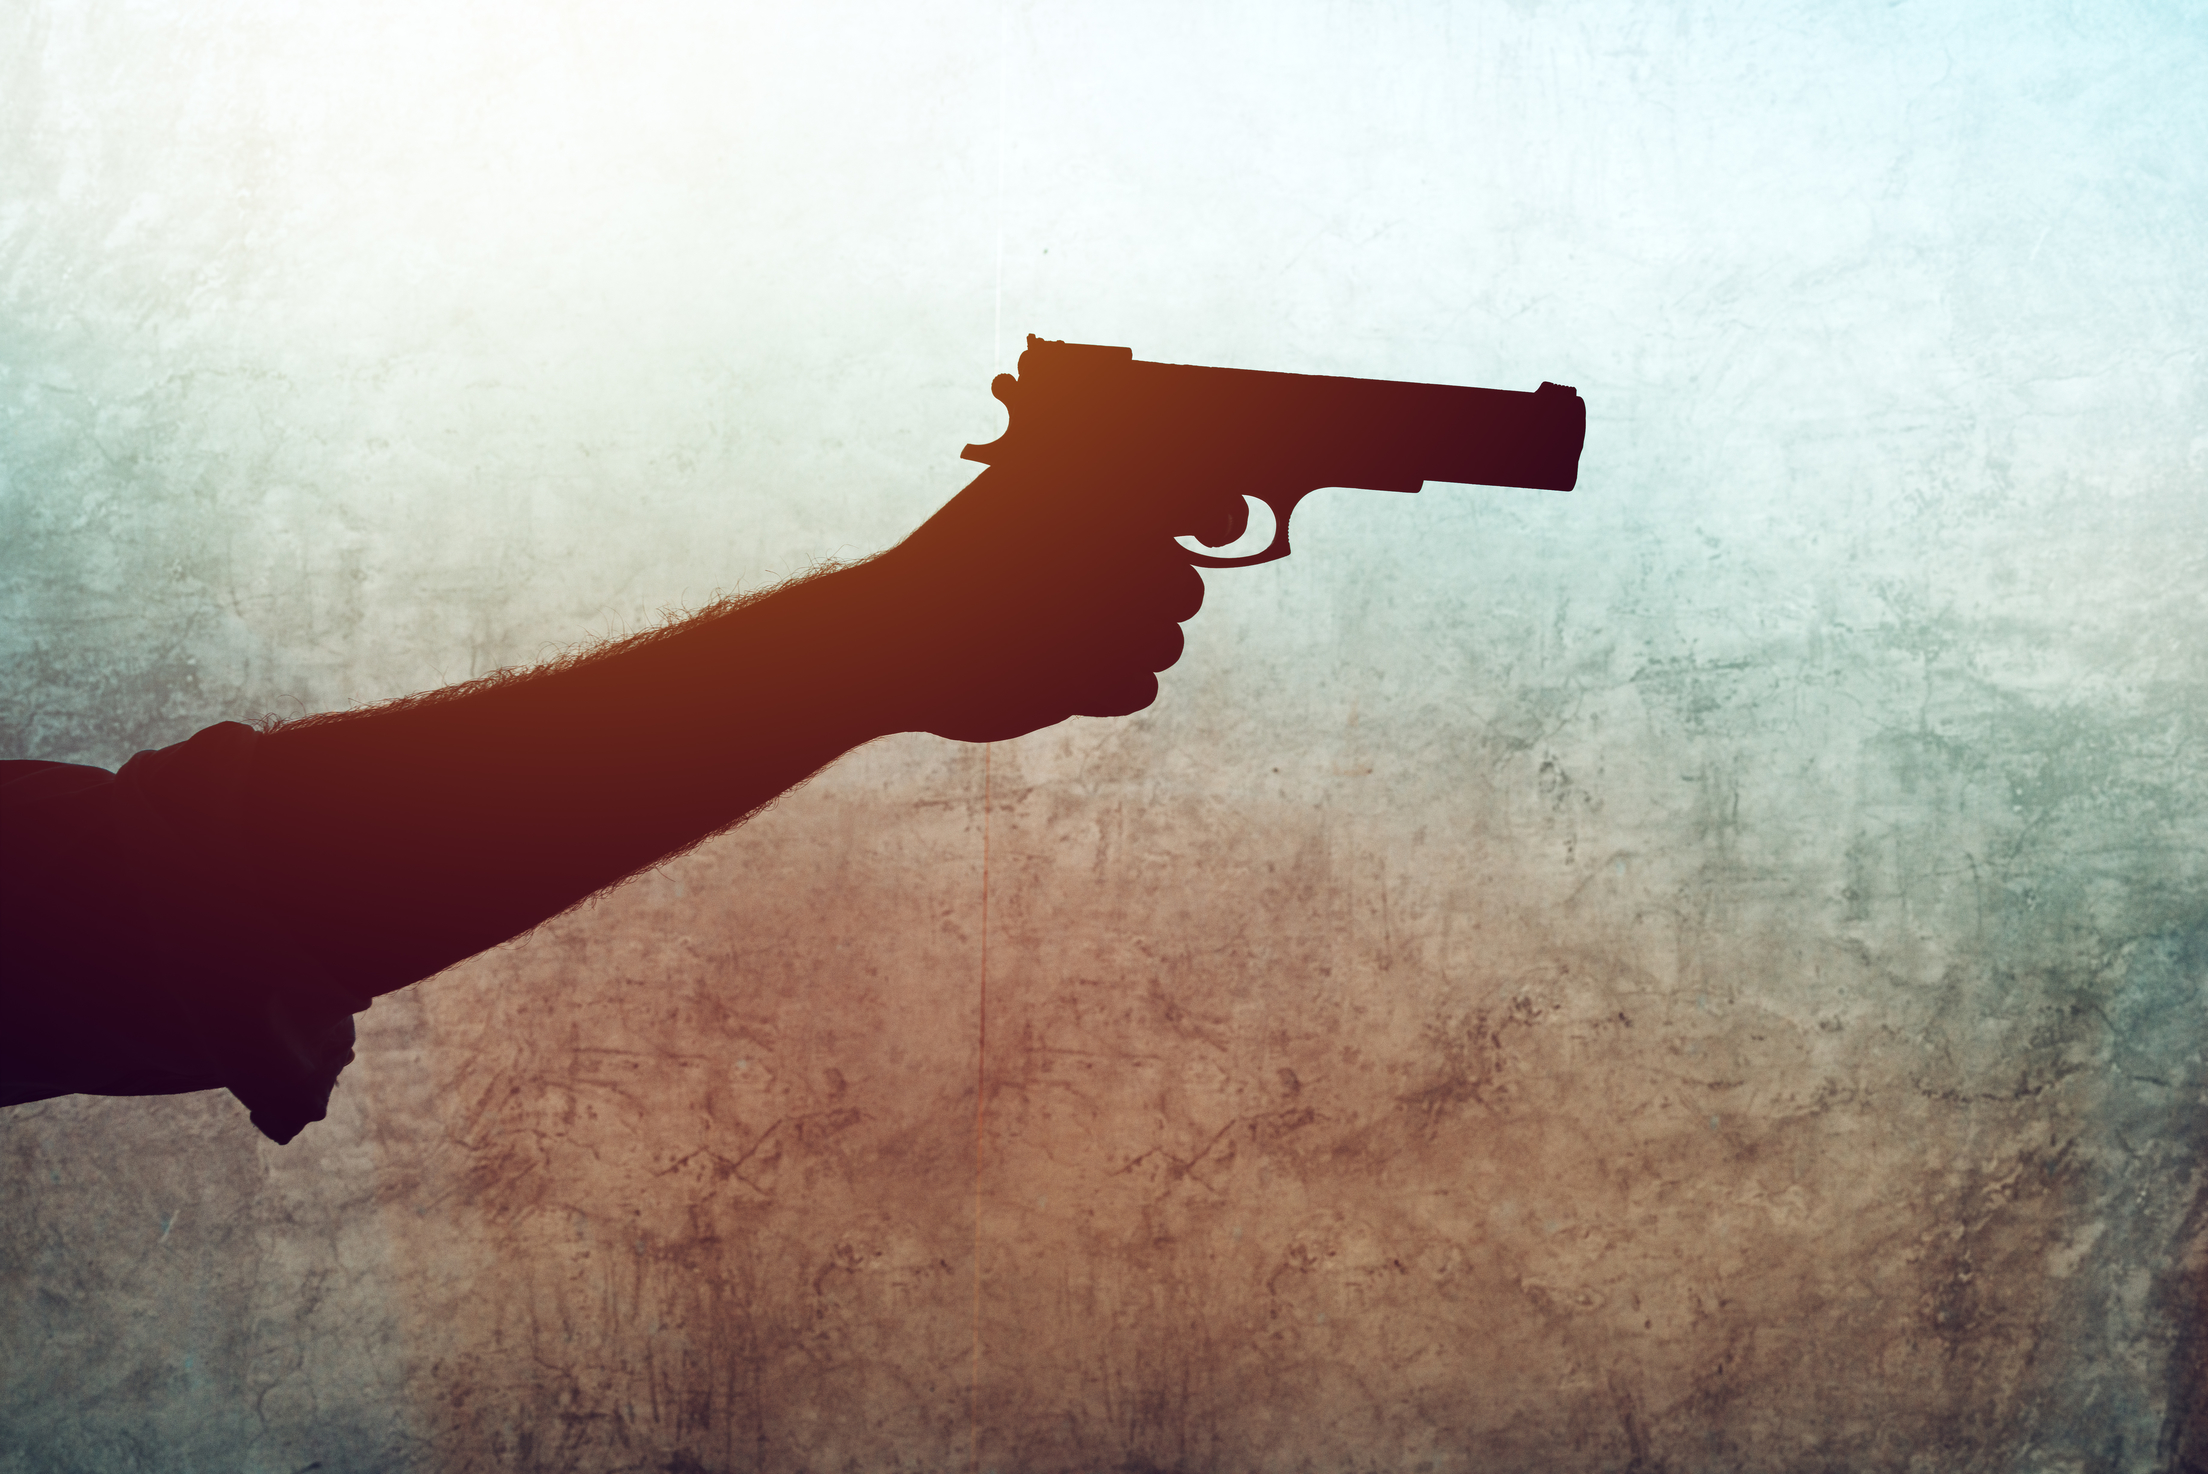 Hand with a gun on grunge background. Violence and crime with use of fire weapon.